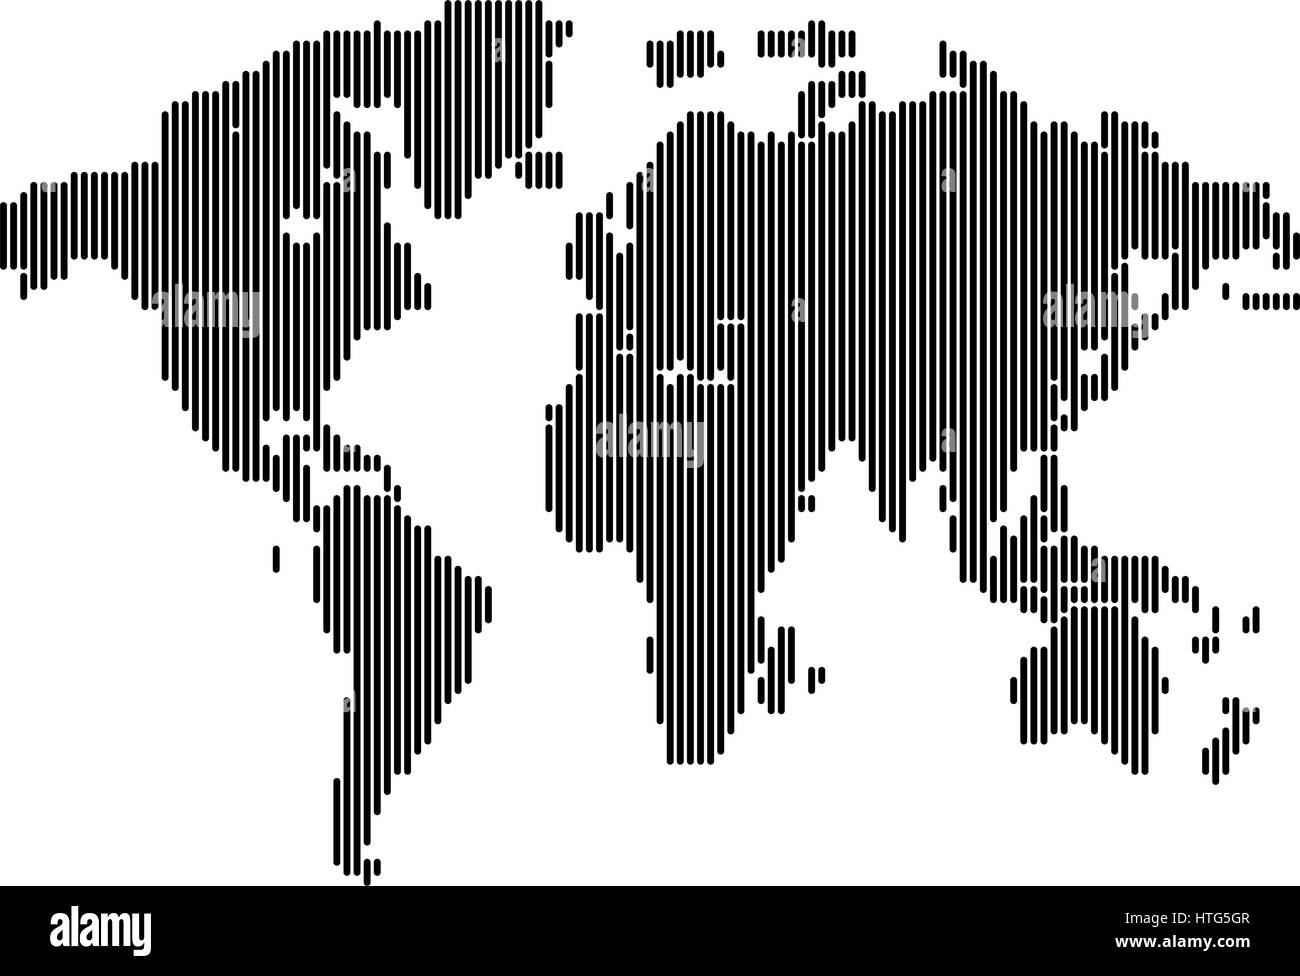 Isolated dark grey color worldmap of lines on white background isolated dark grey color worldmap of lines on white background earth vector illustration gumiabroncs Gallery